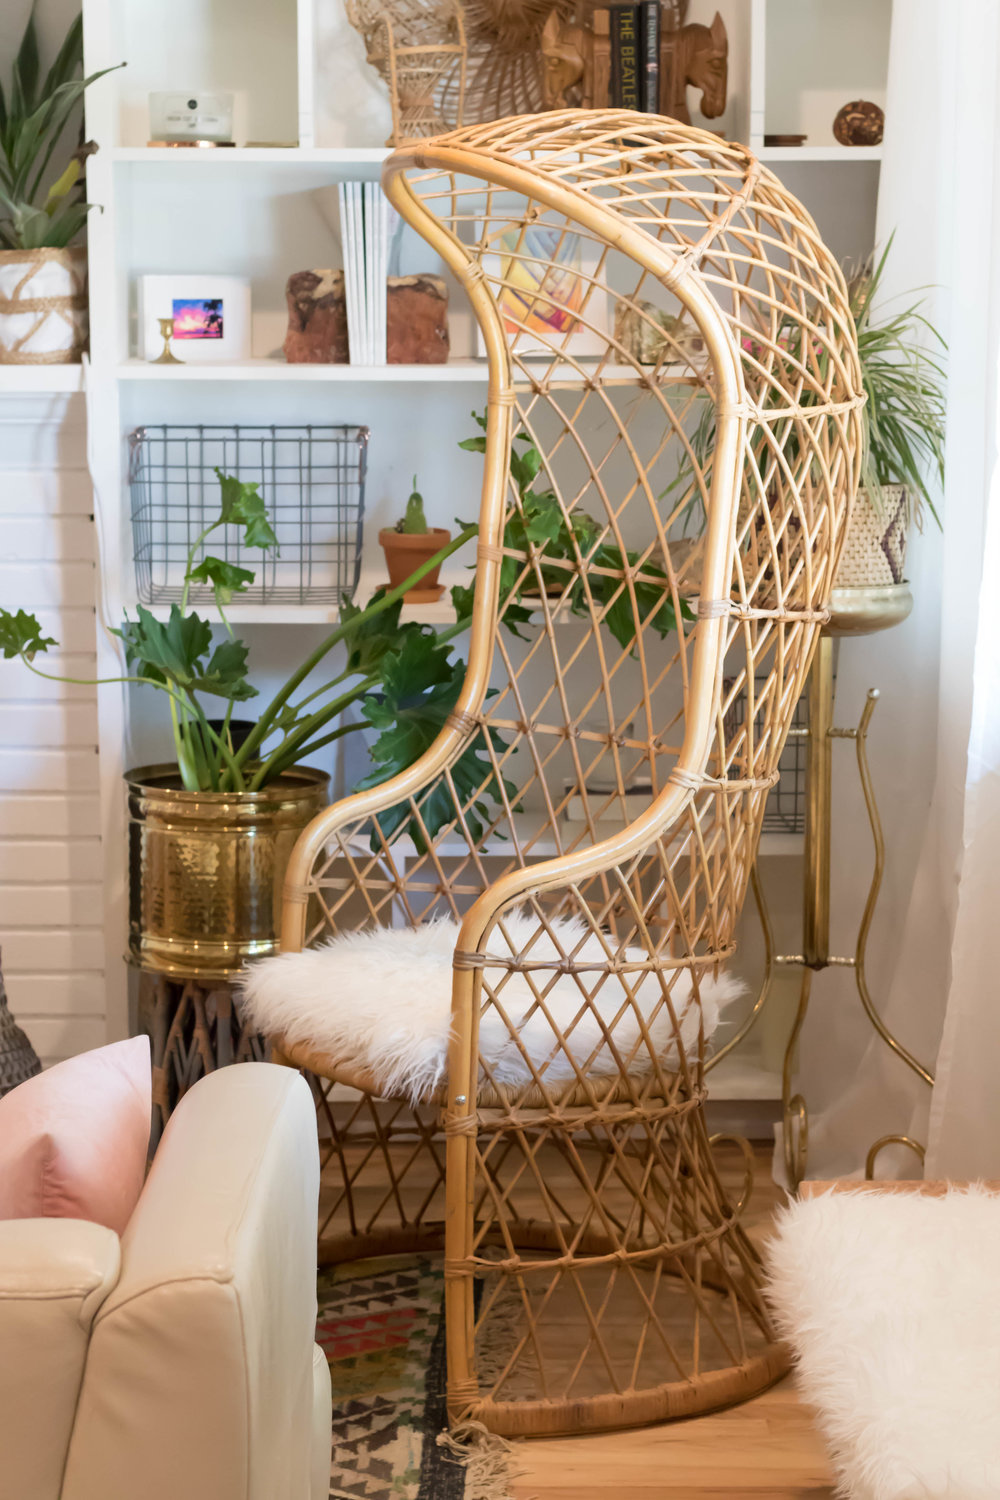 Crosby, Stills, Nash & Young - (4) Hooded rattan chairs